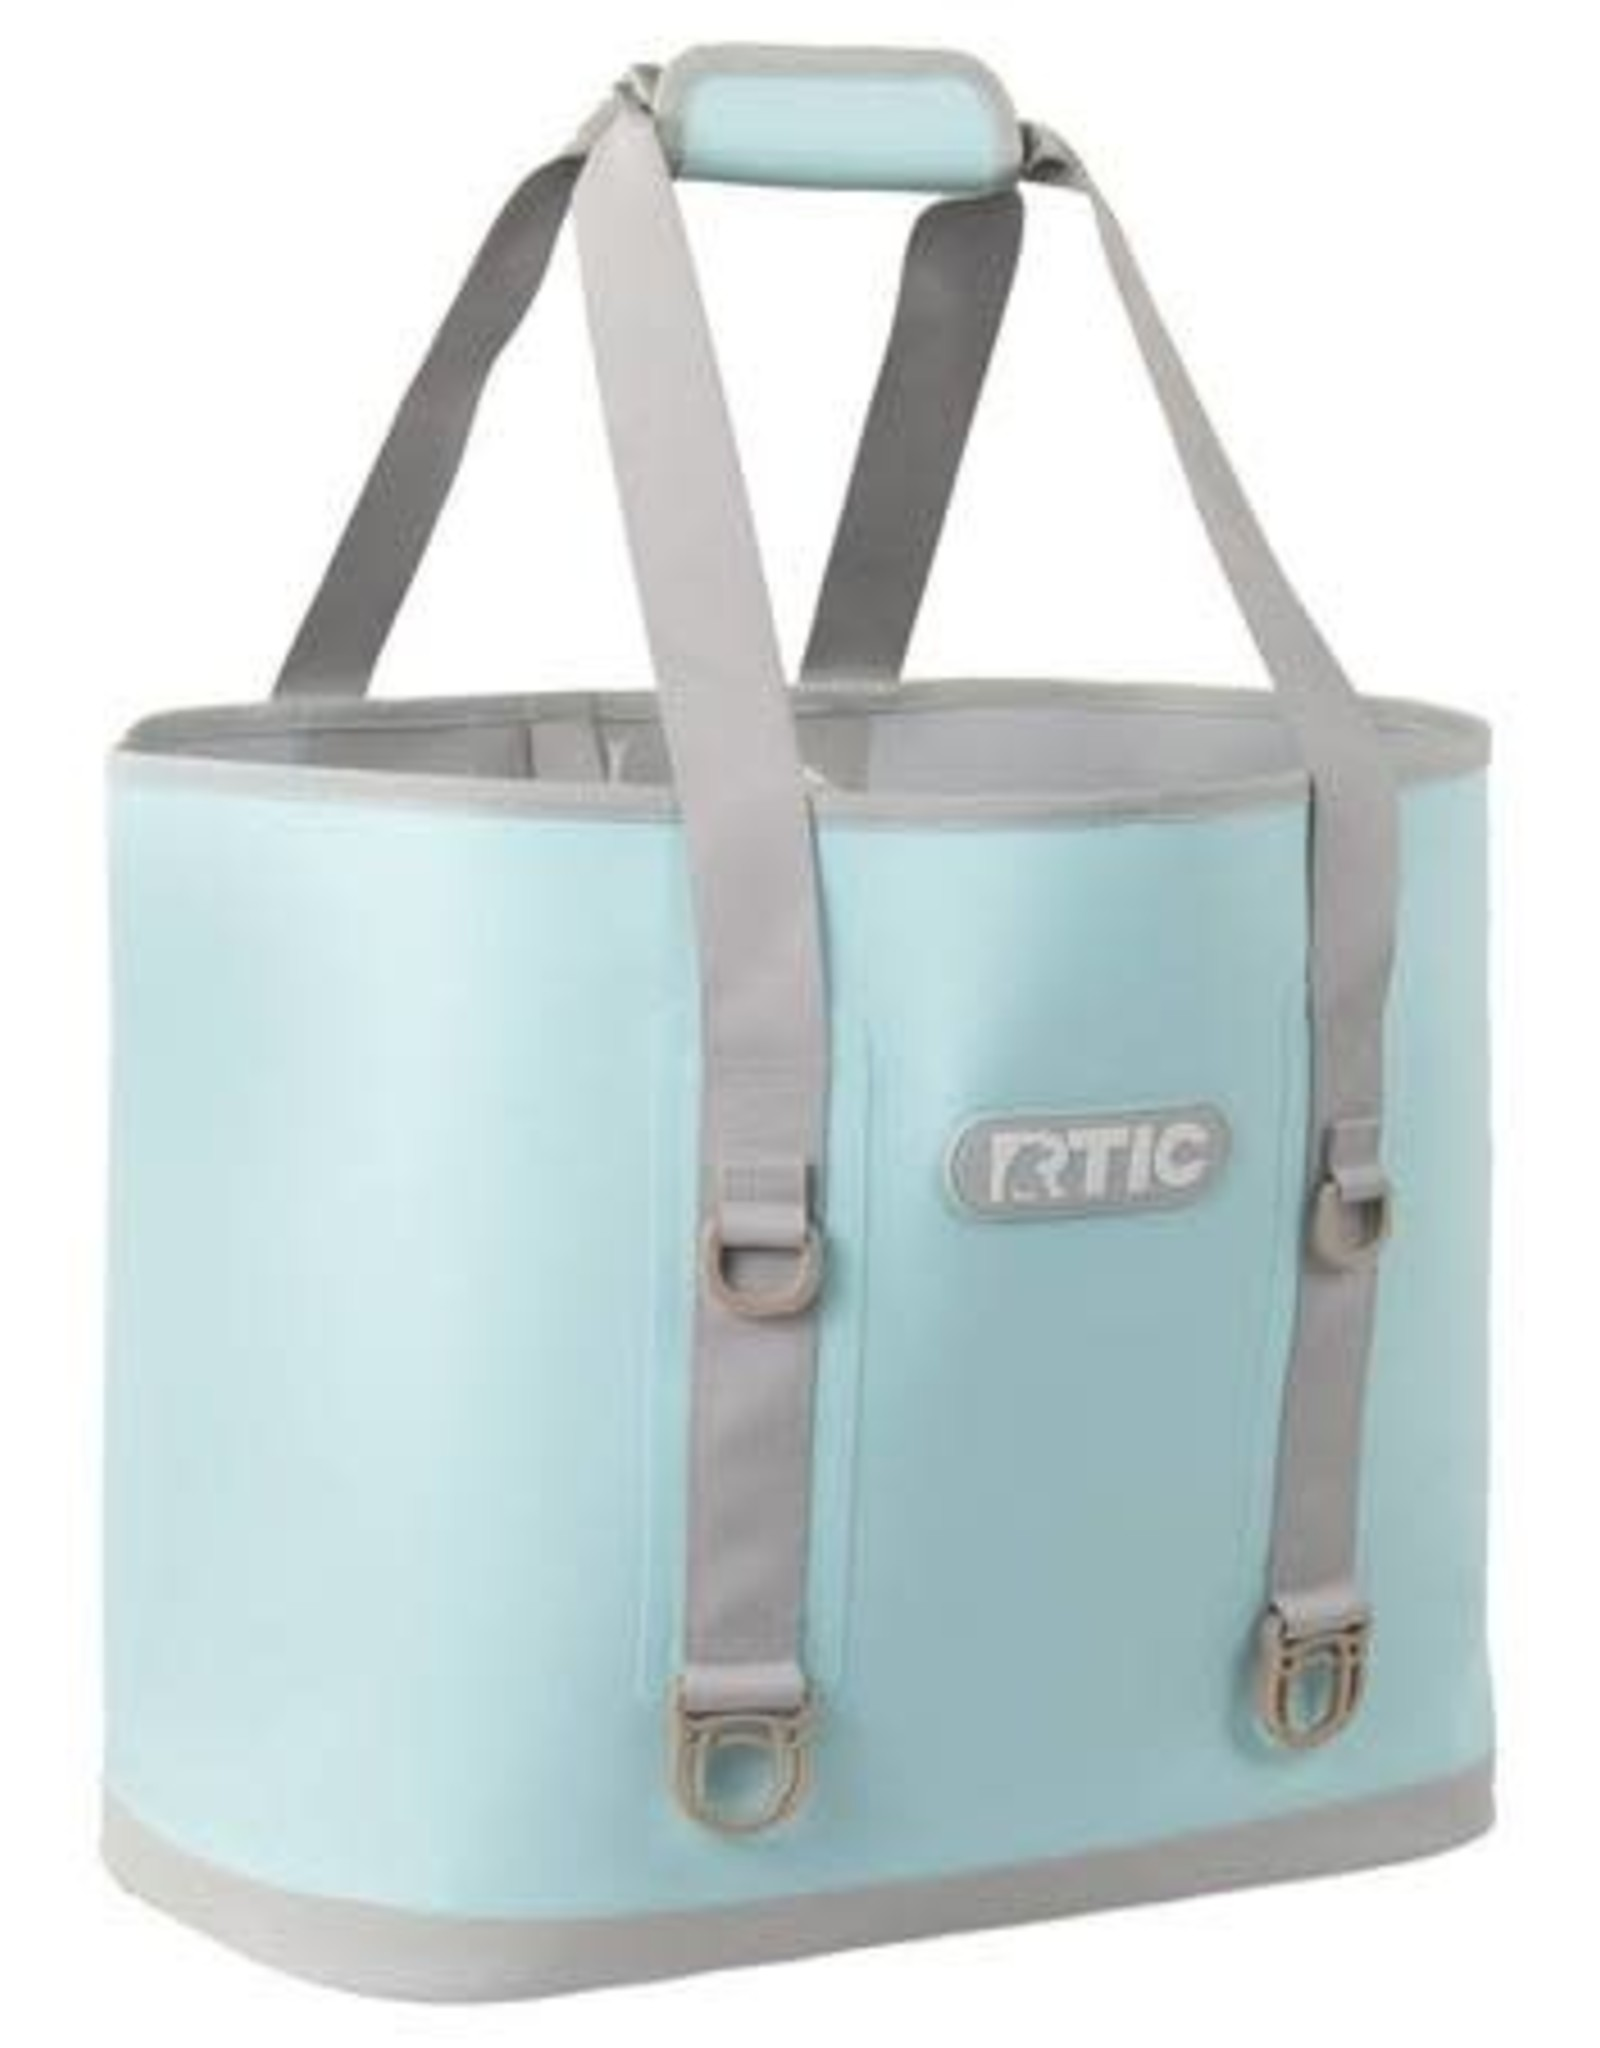 RTIC RTIC Tote Bag Large Sky Blue